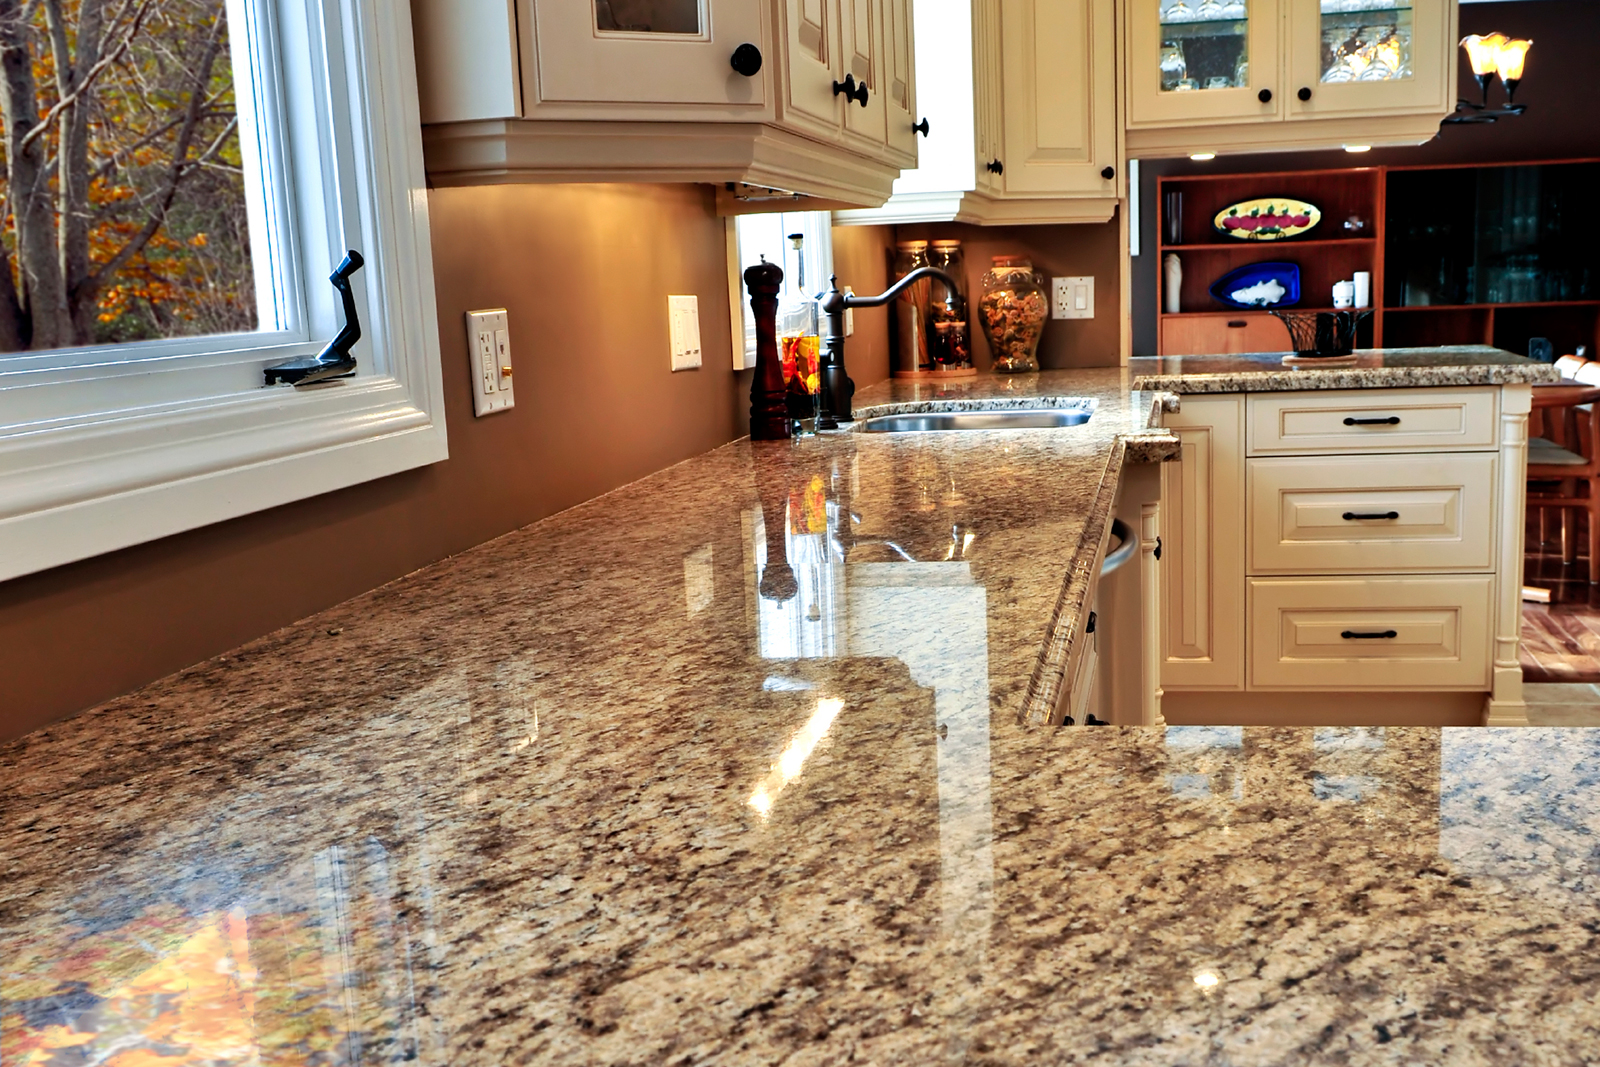 repair and replace kitchen counters stay top scratches replacing kitchen countertops